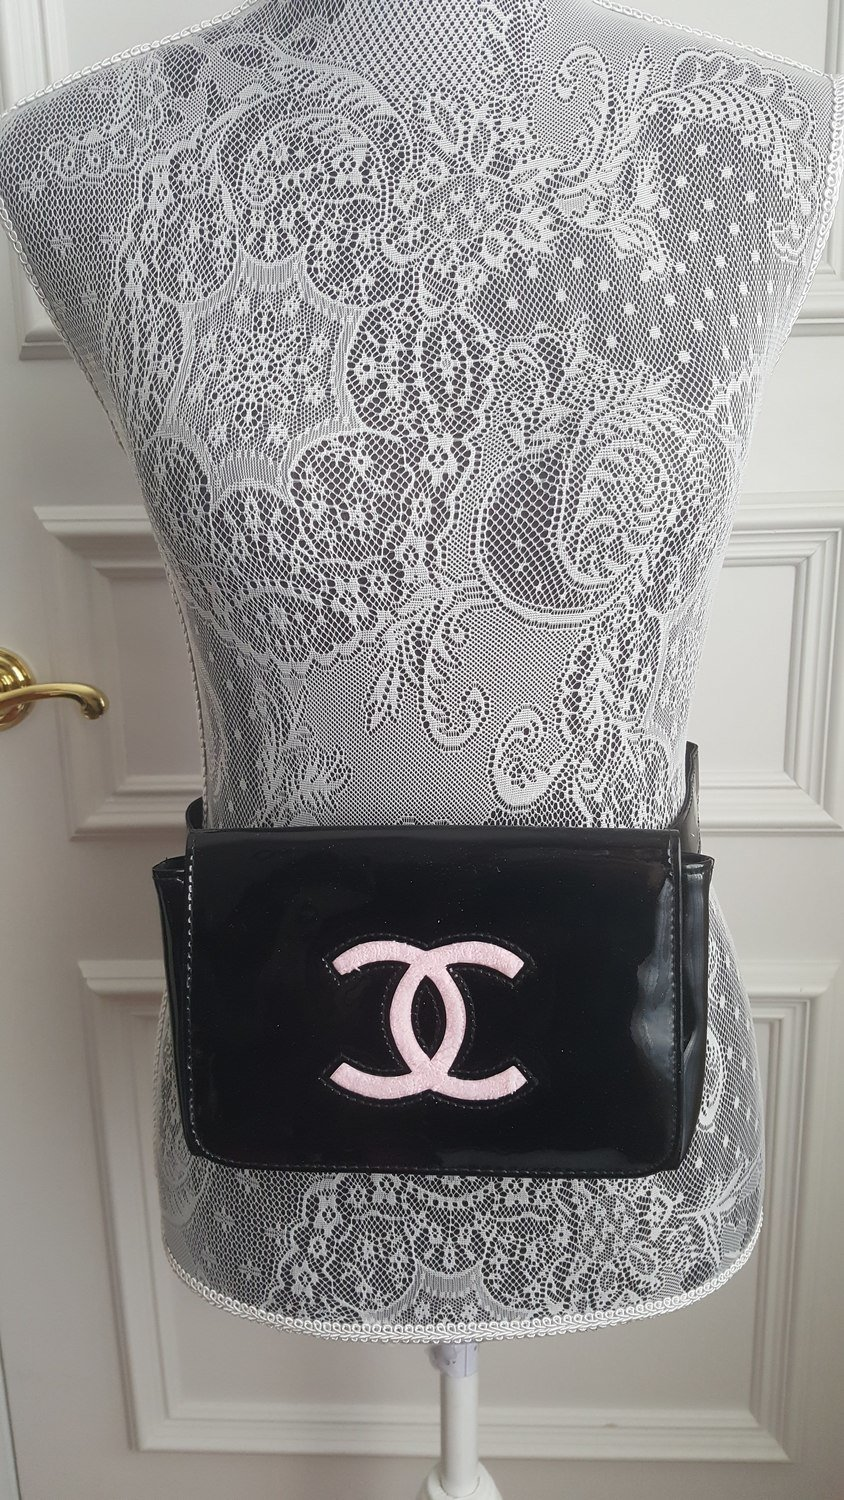 Chanel VIP Black Patent Leather Fanny Pack Clutch